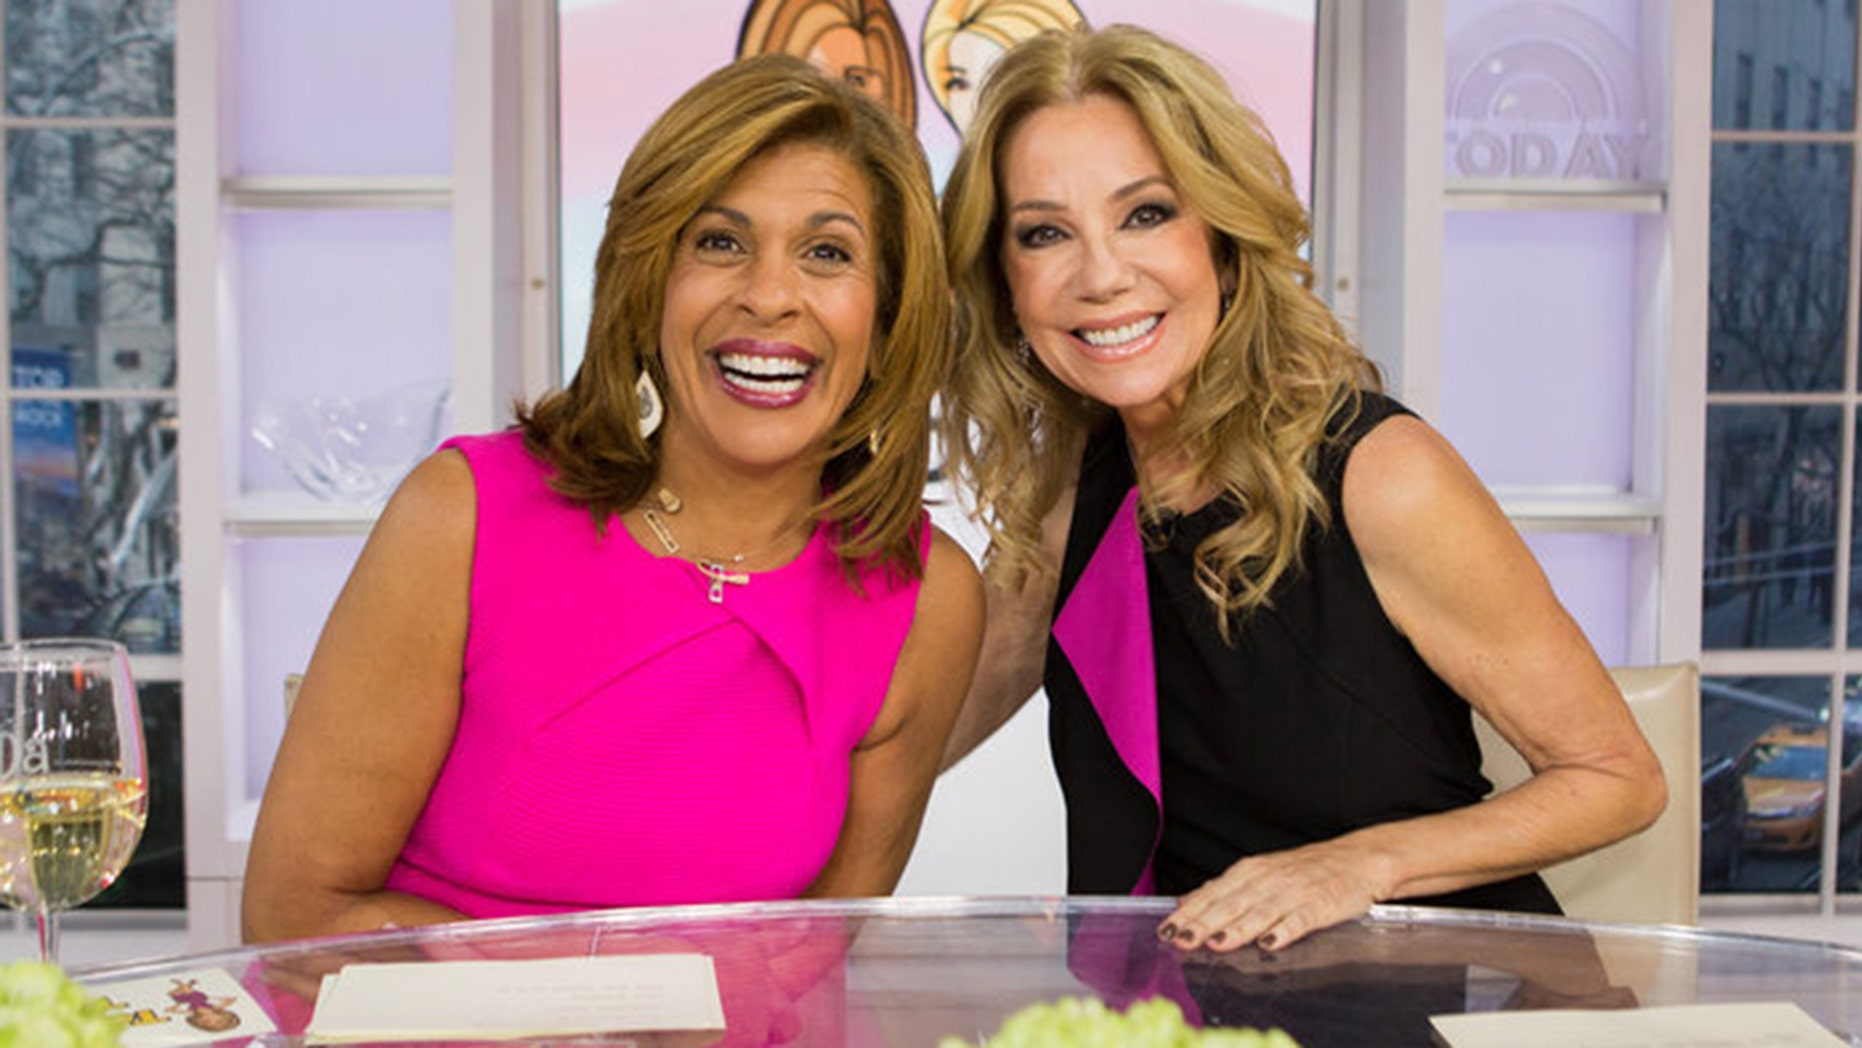 Kathie lee gifford 39 s 39 today 39 show departure shocks fans - Nbc today show kathie lee and hoda ...